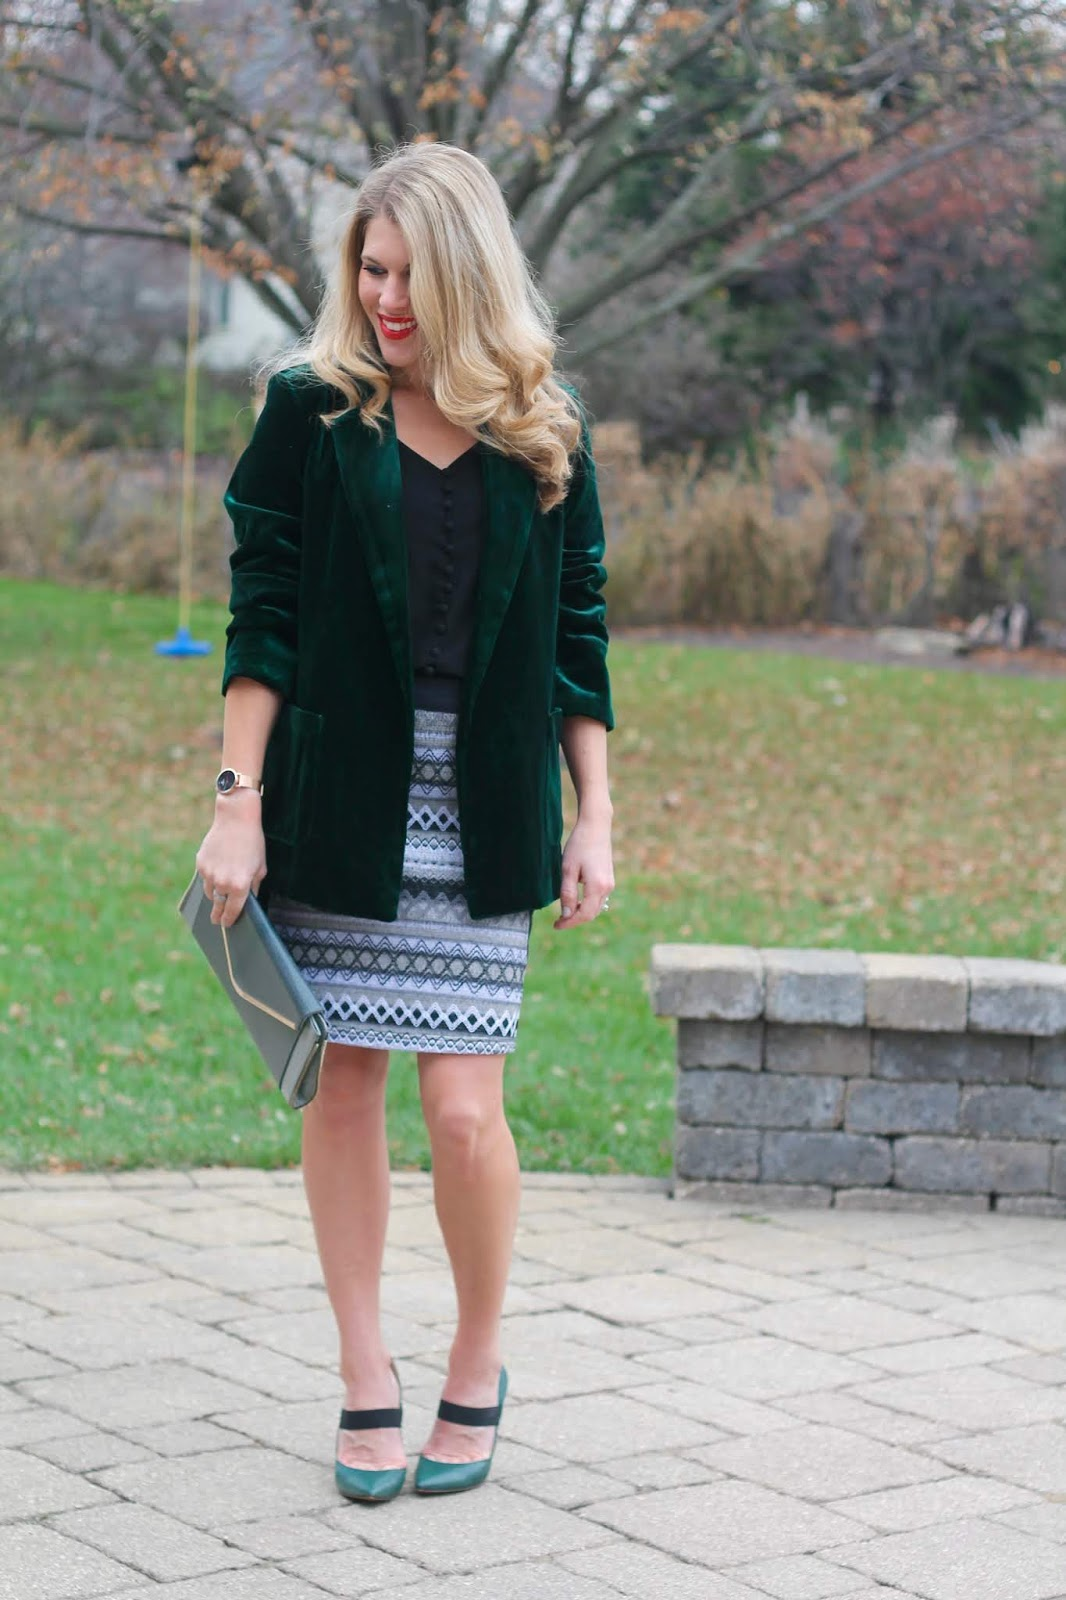 ggreen velvet blazer, holiday outfits, aventura jacquard skirt, black button up cami, grey envelope clutch, starking watch review, giveaway, cotton underwear